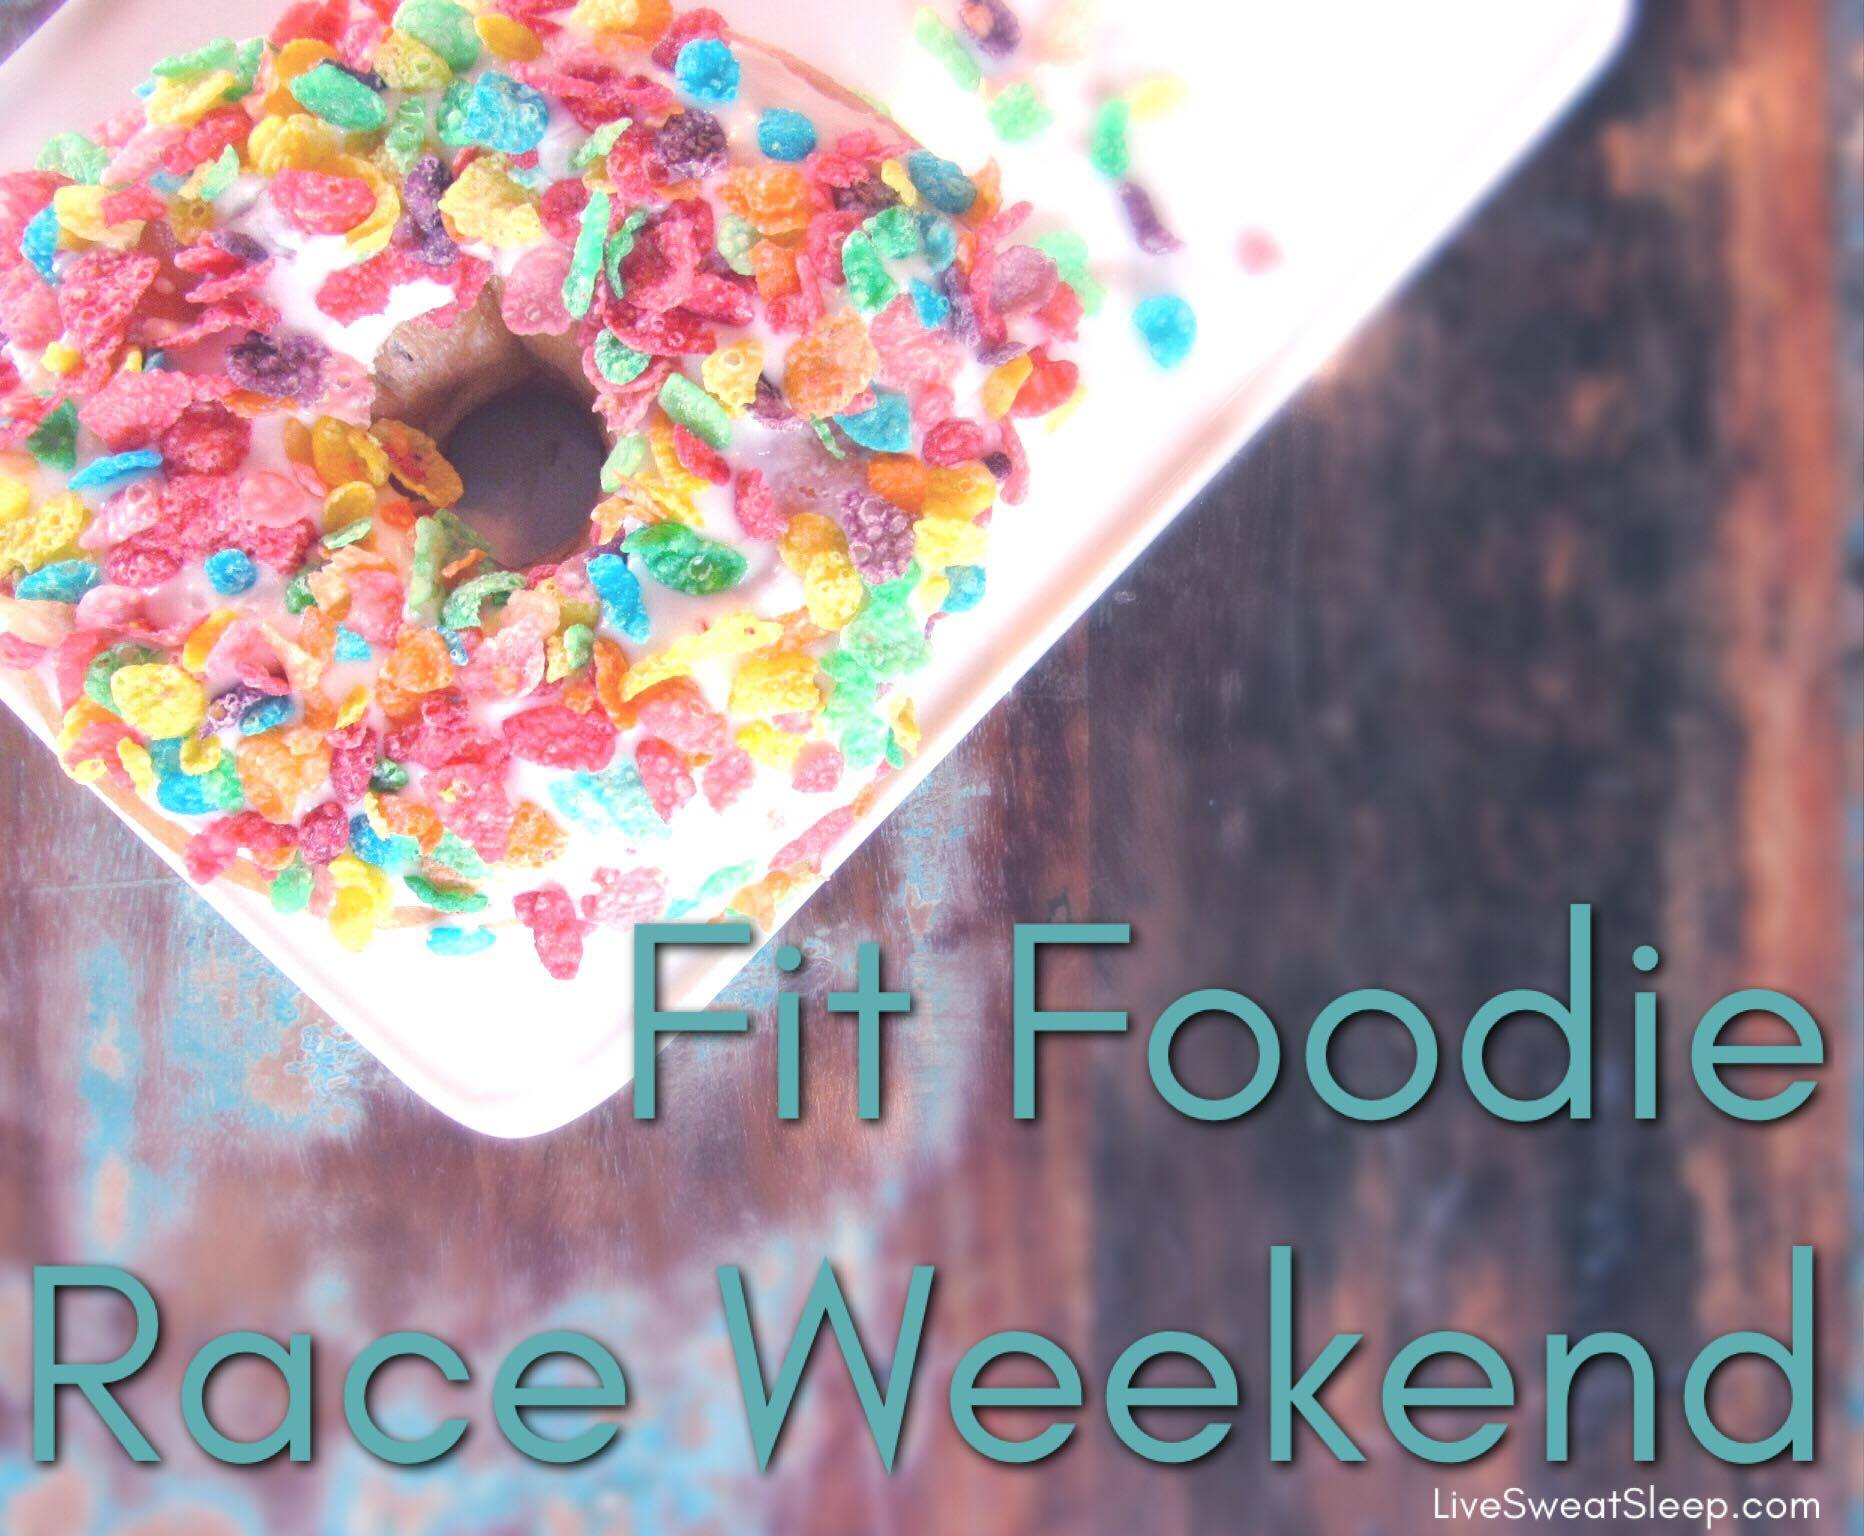 fitfoodie